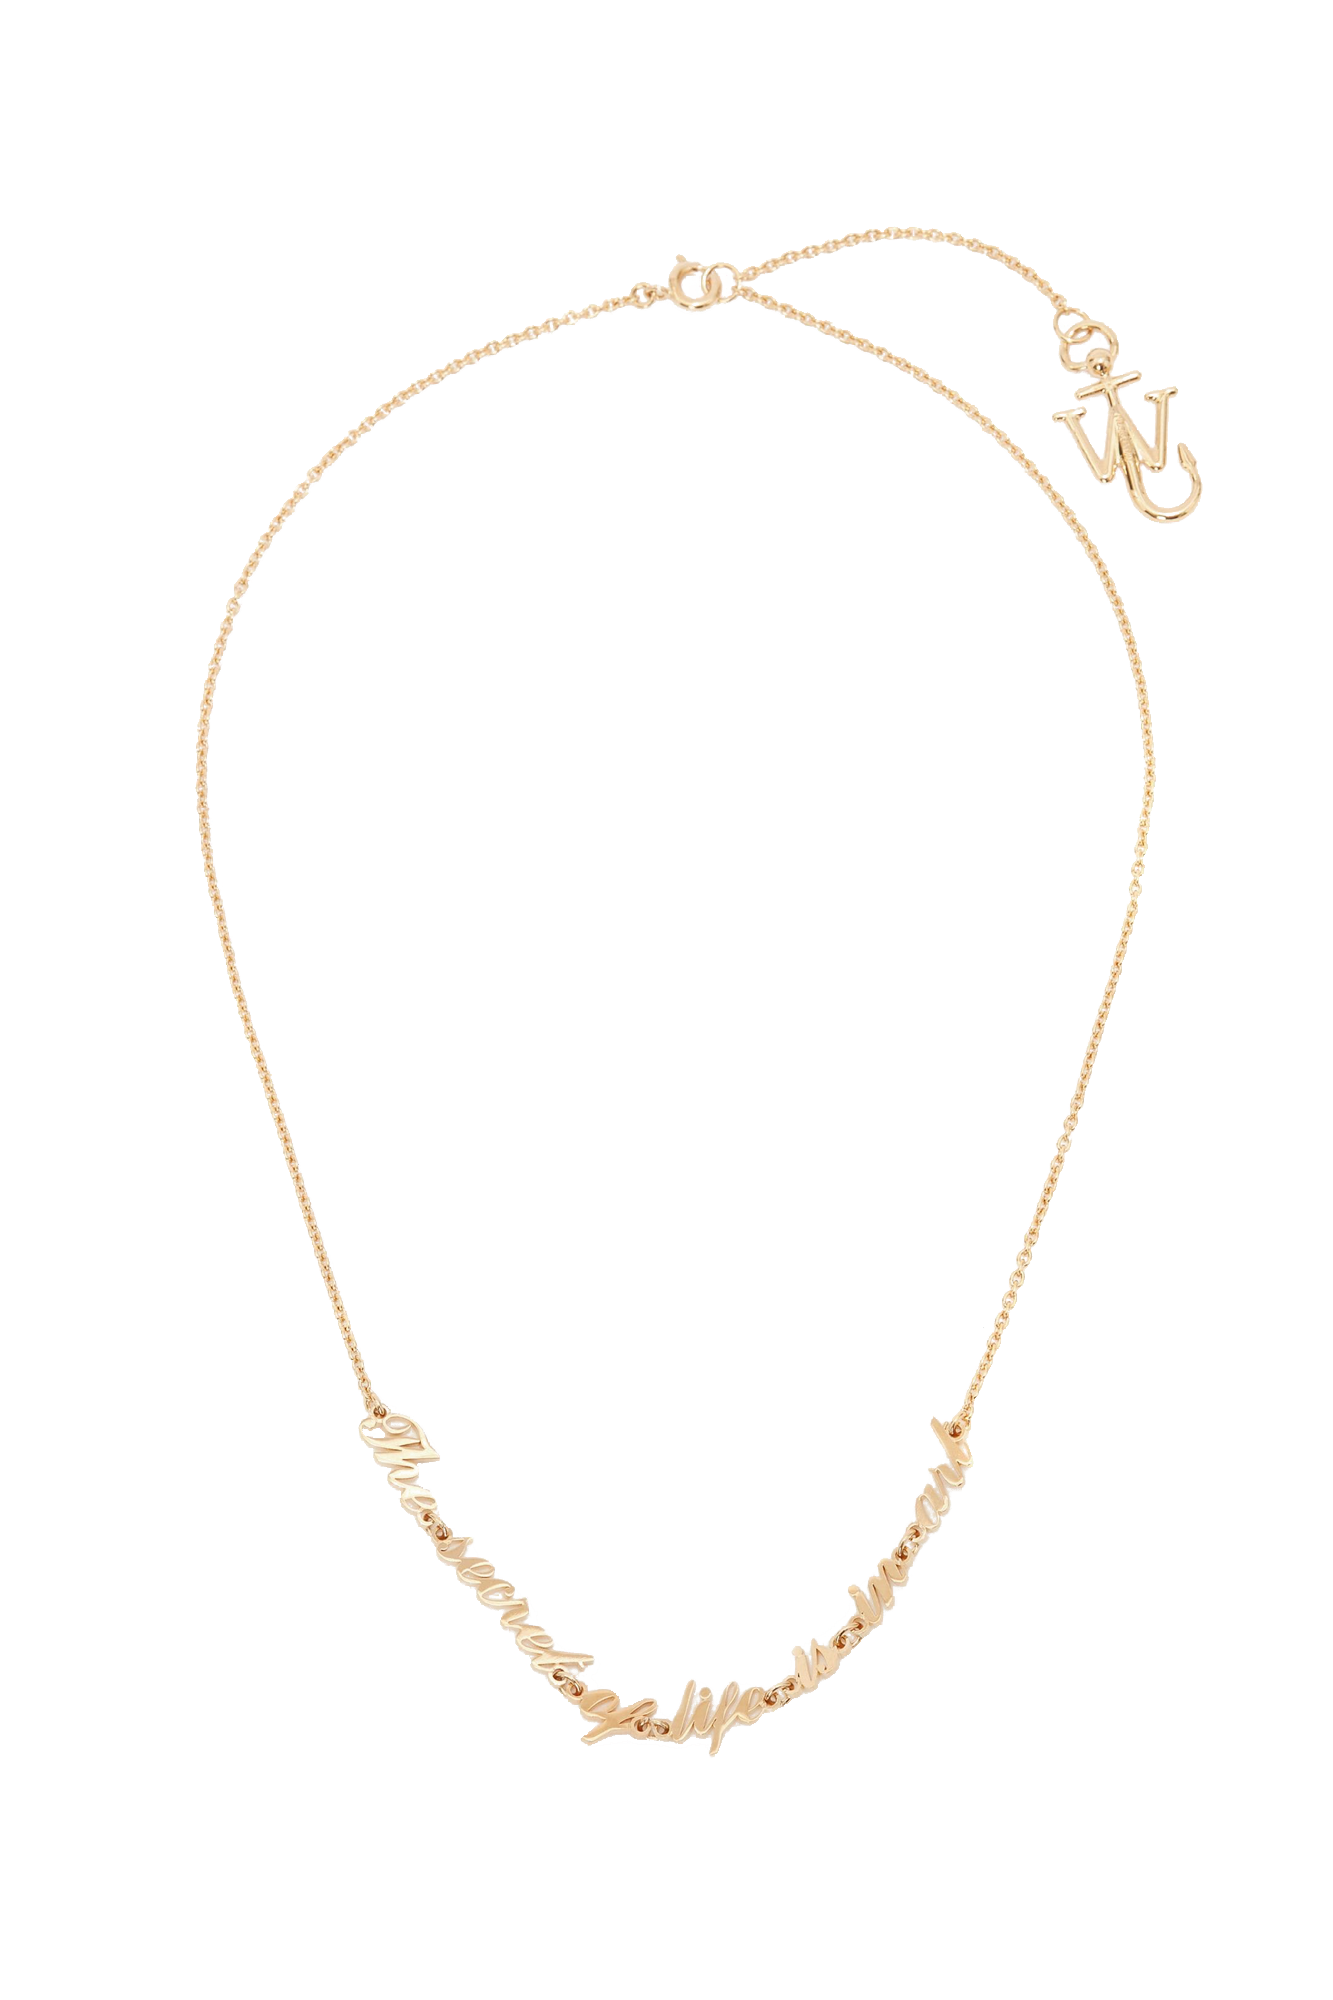 OSCAR WILDE NECKLACE IN GOLD